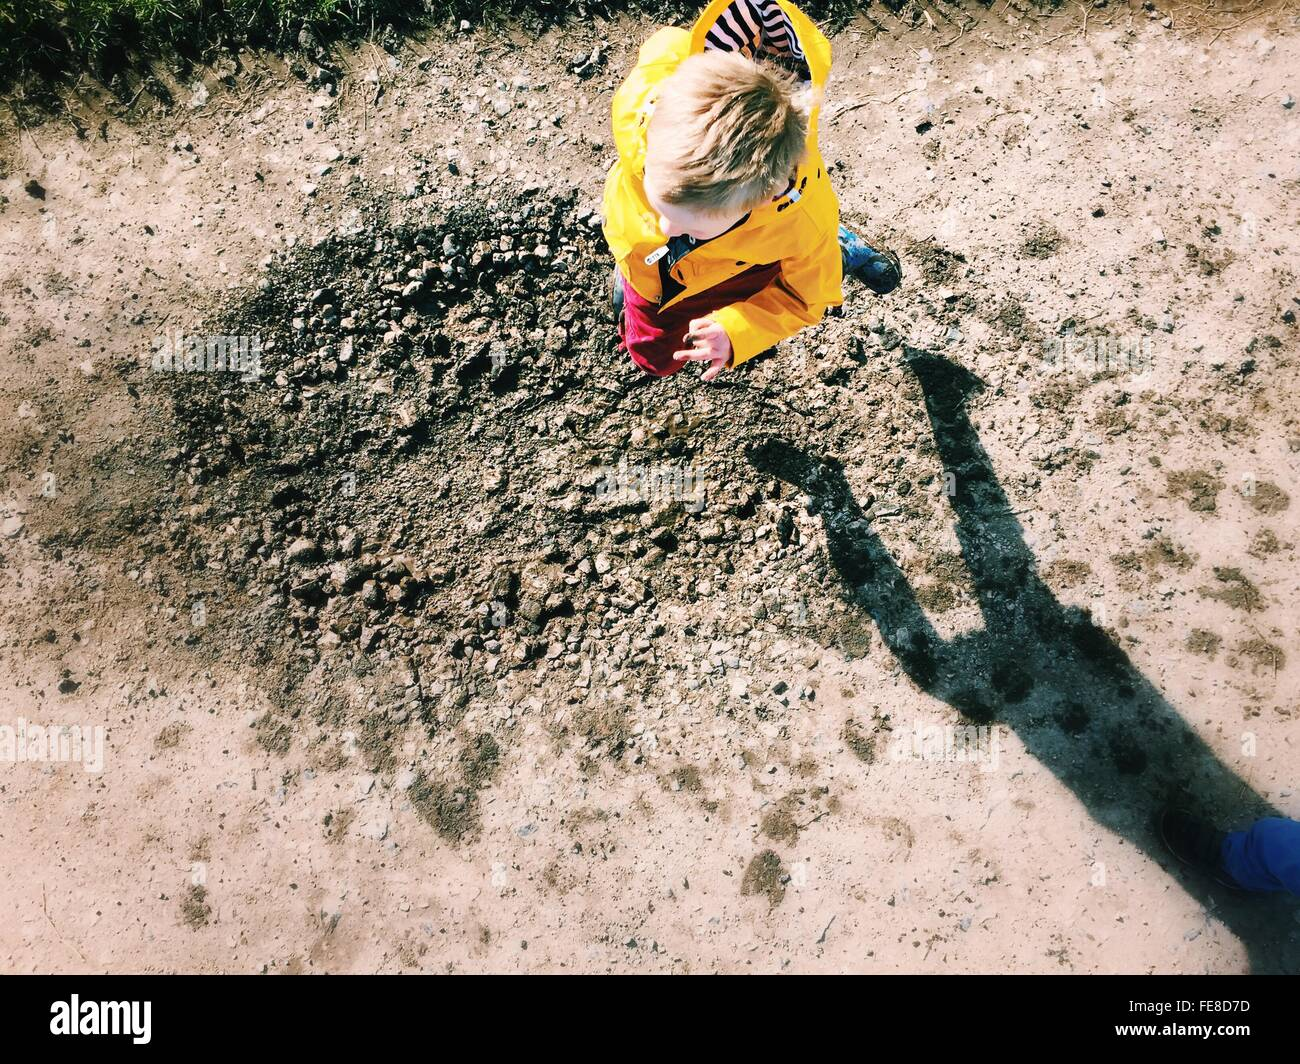 High Angle View Of Boy Jumping On Muddy Puddle - Stock Image